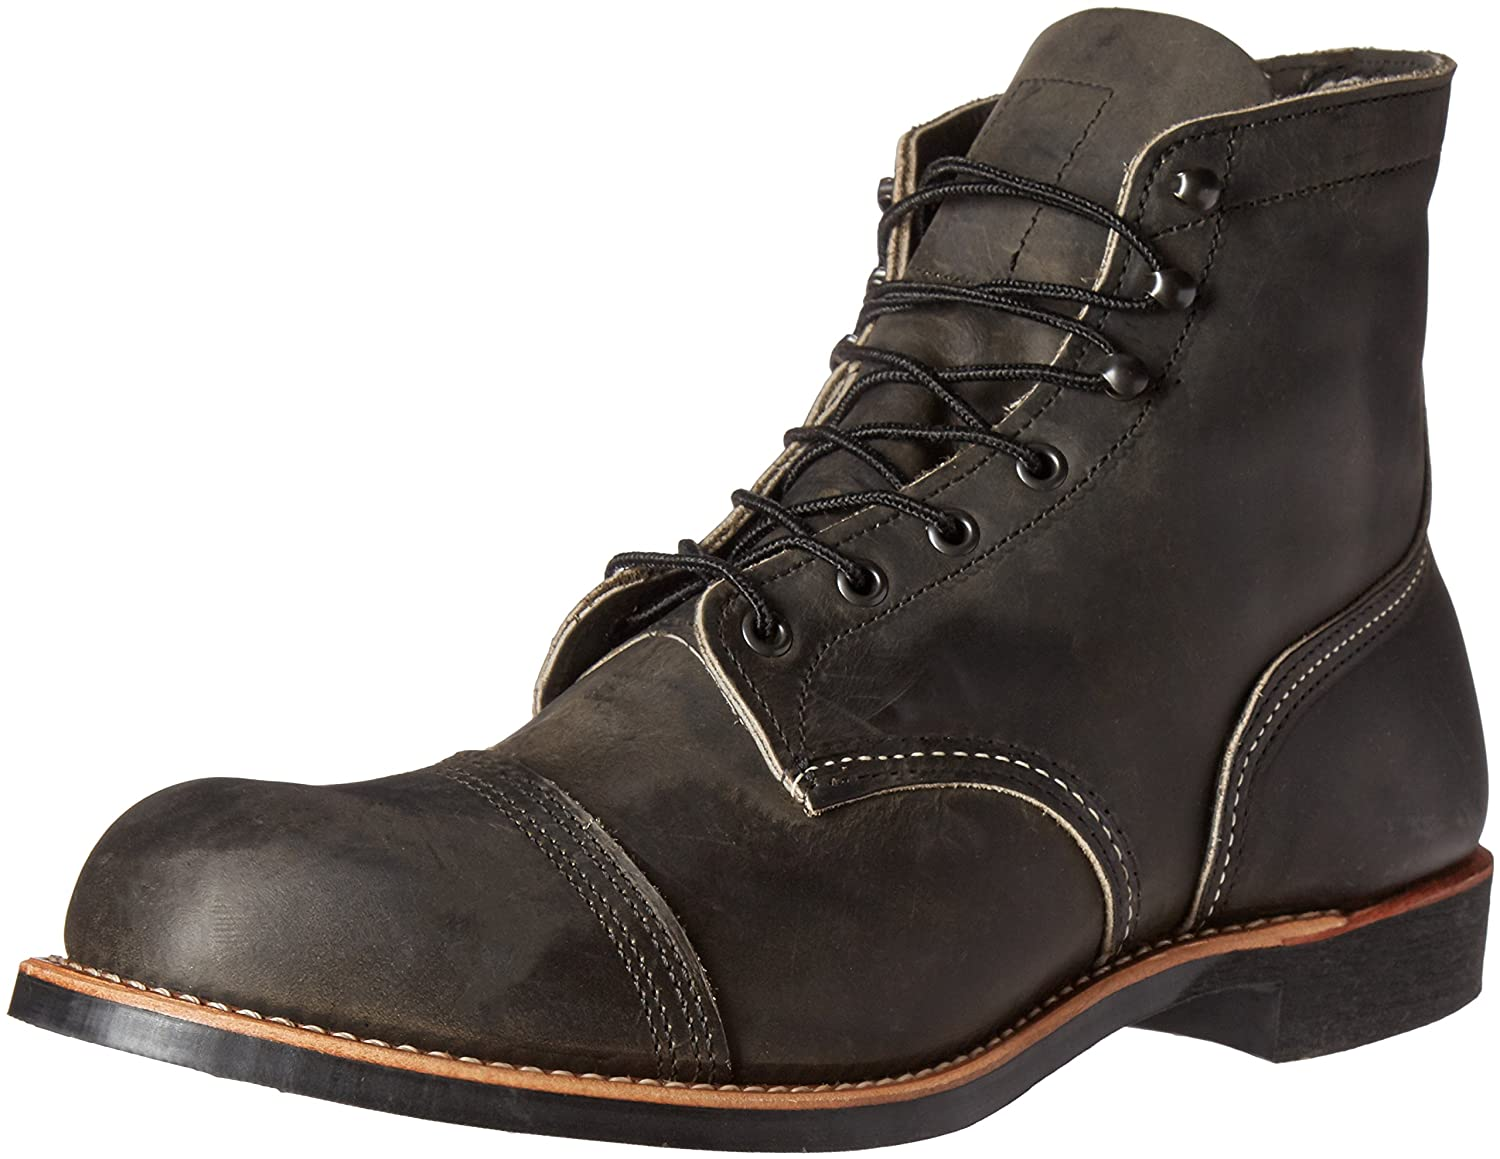 Arranque De Red Wing Hierro Ranger para Hombre UK7 EU41 US8 Charcoal ...